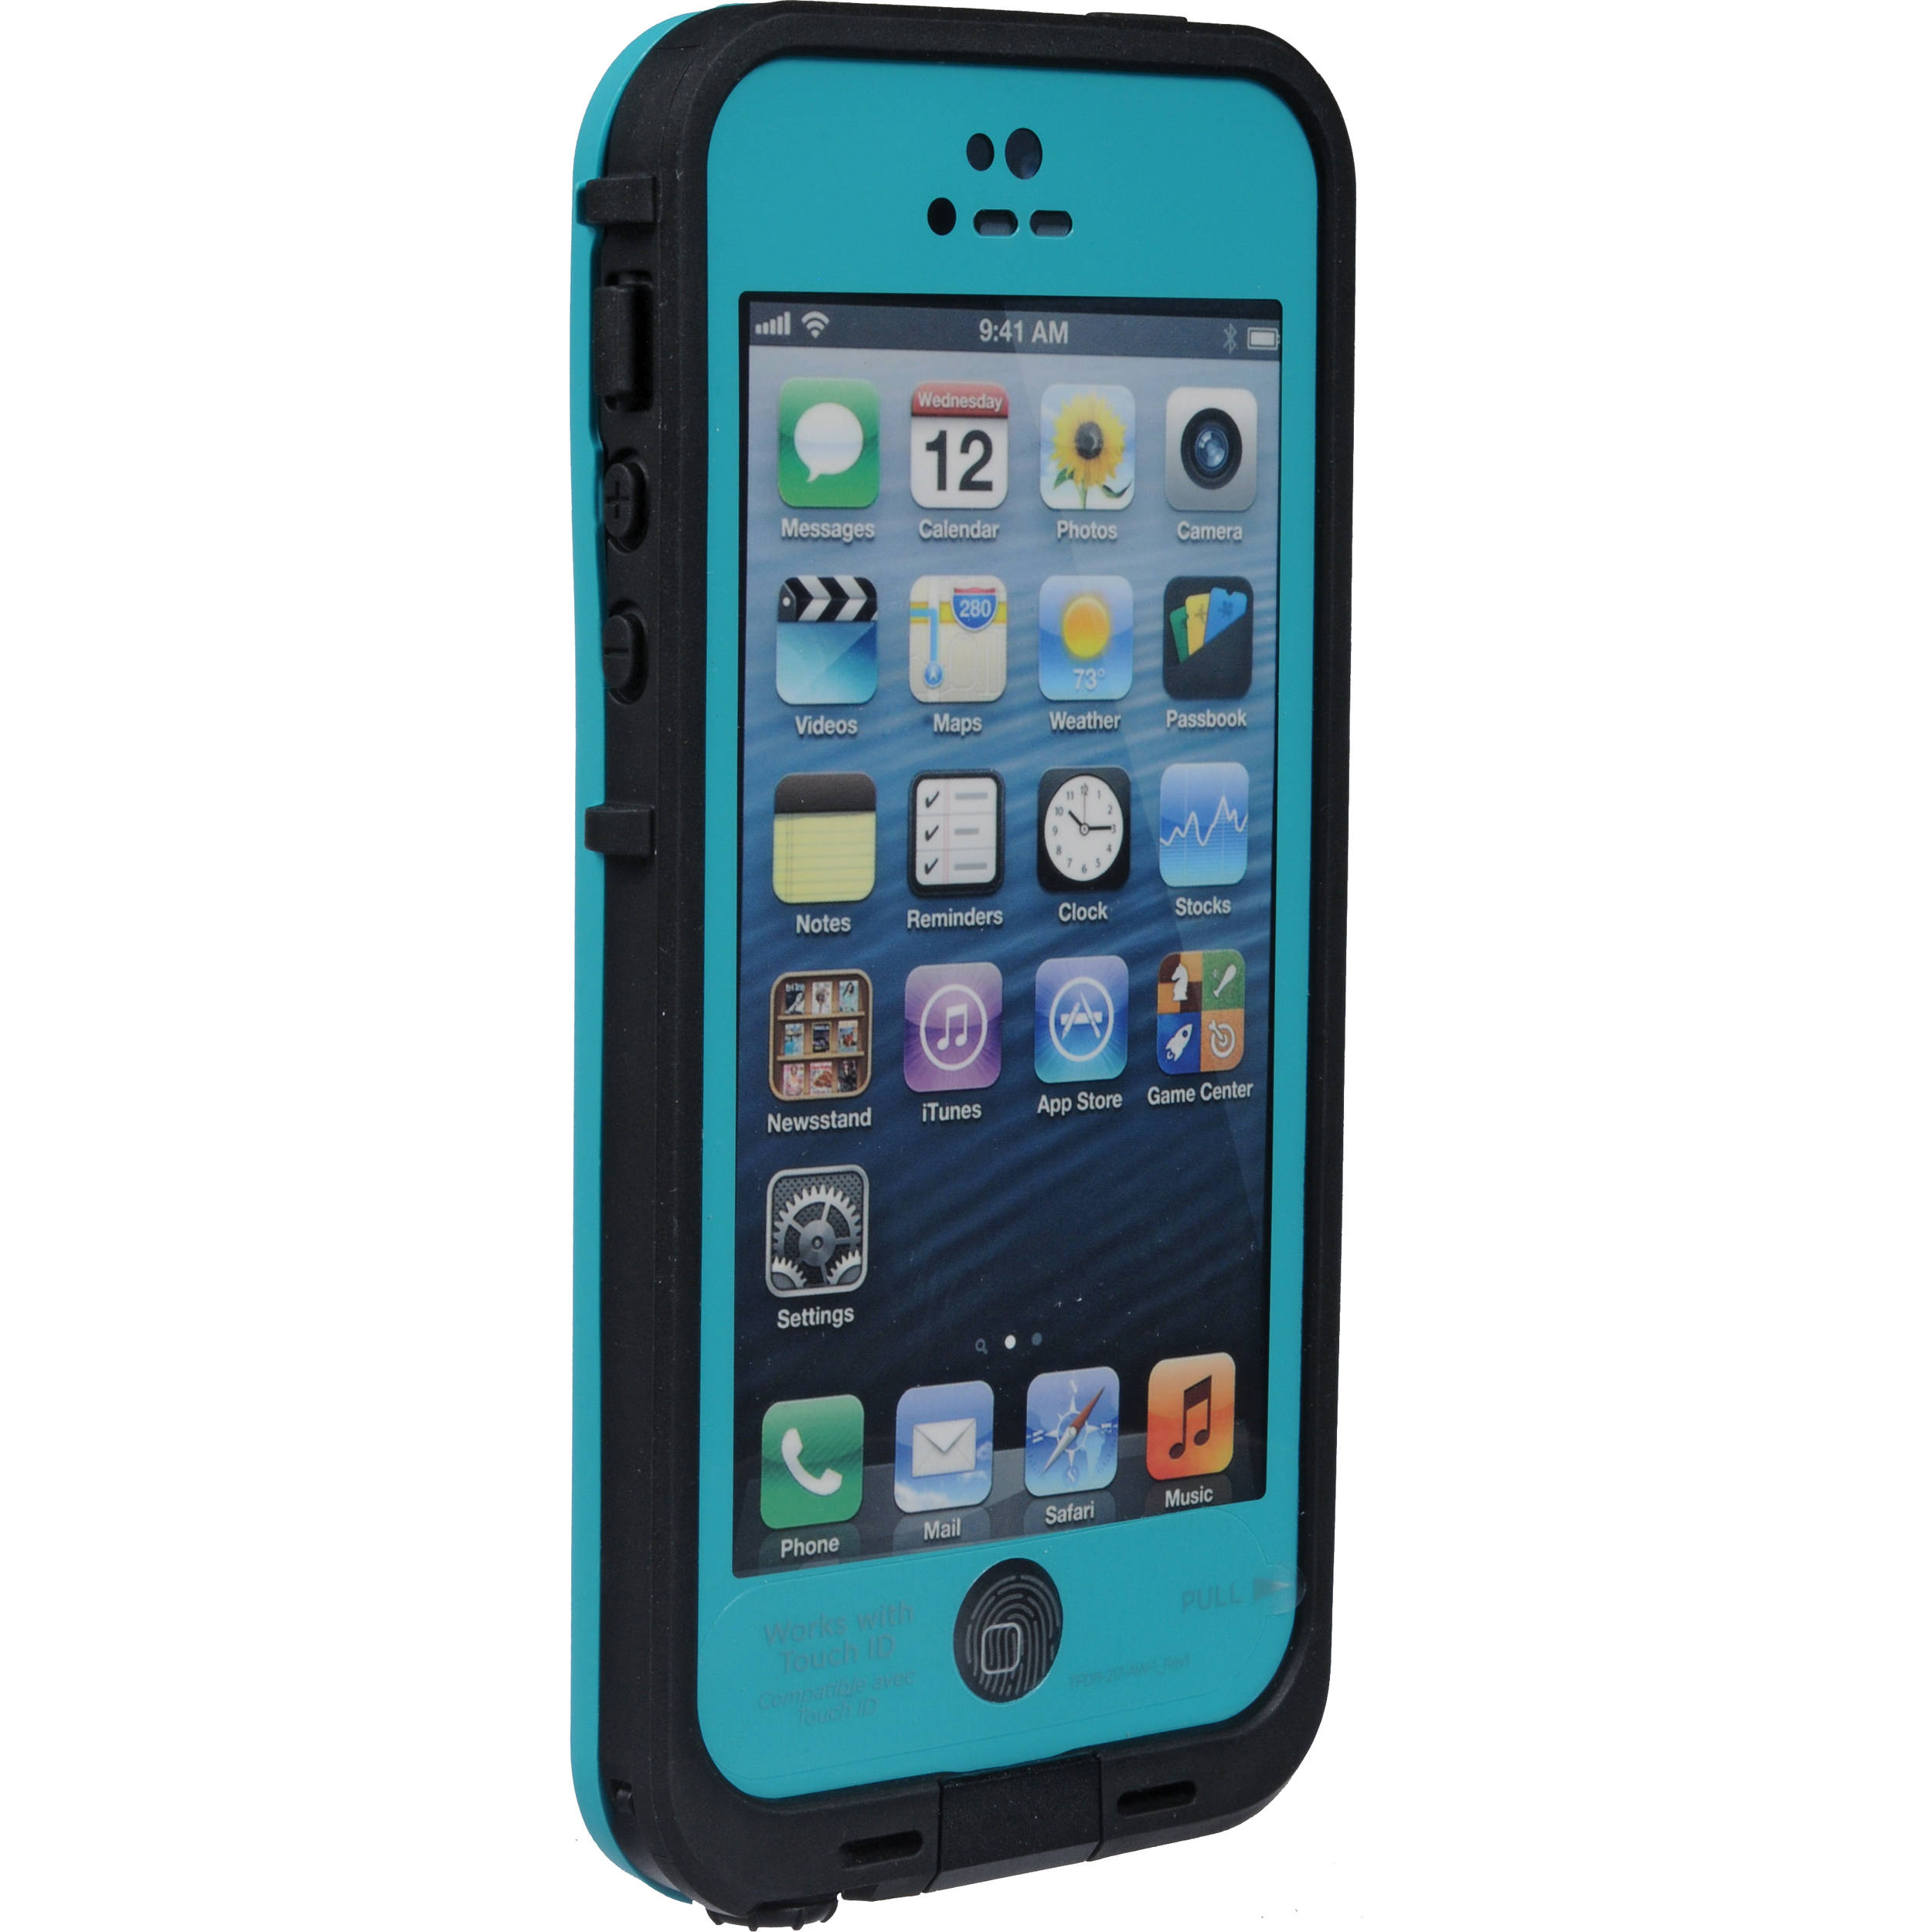 iphone 5s cases lifeproof lifeproof fr for iphone 5 5s se teal black 2101 06 b amp h 4305